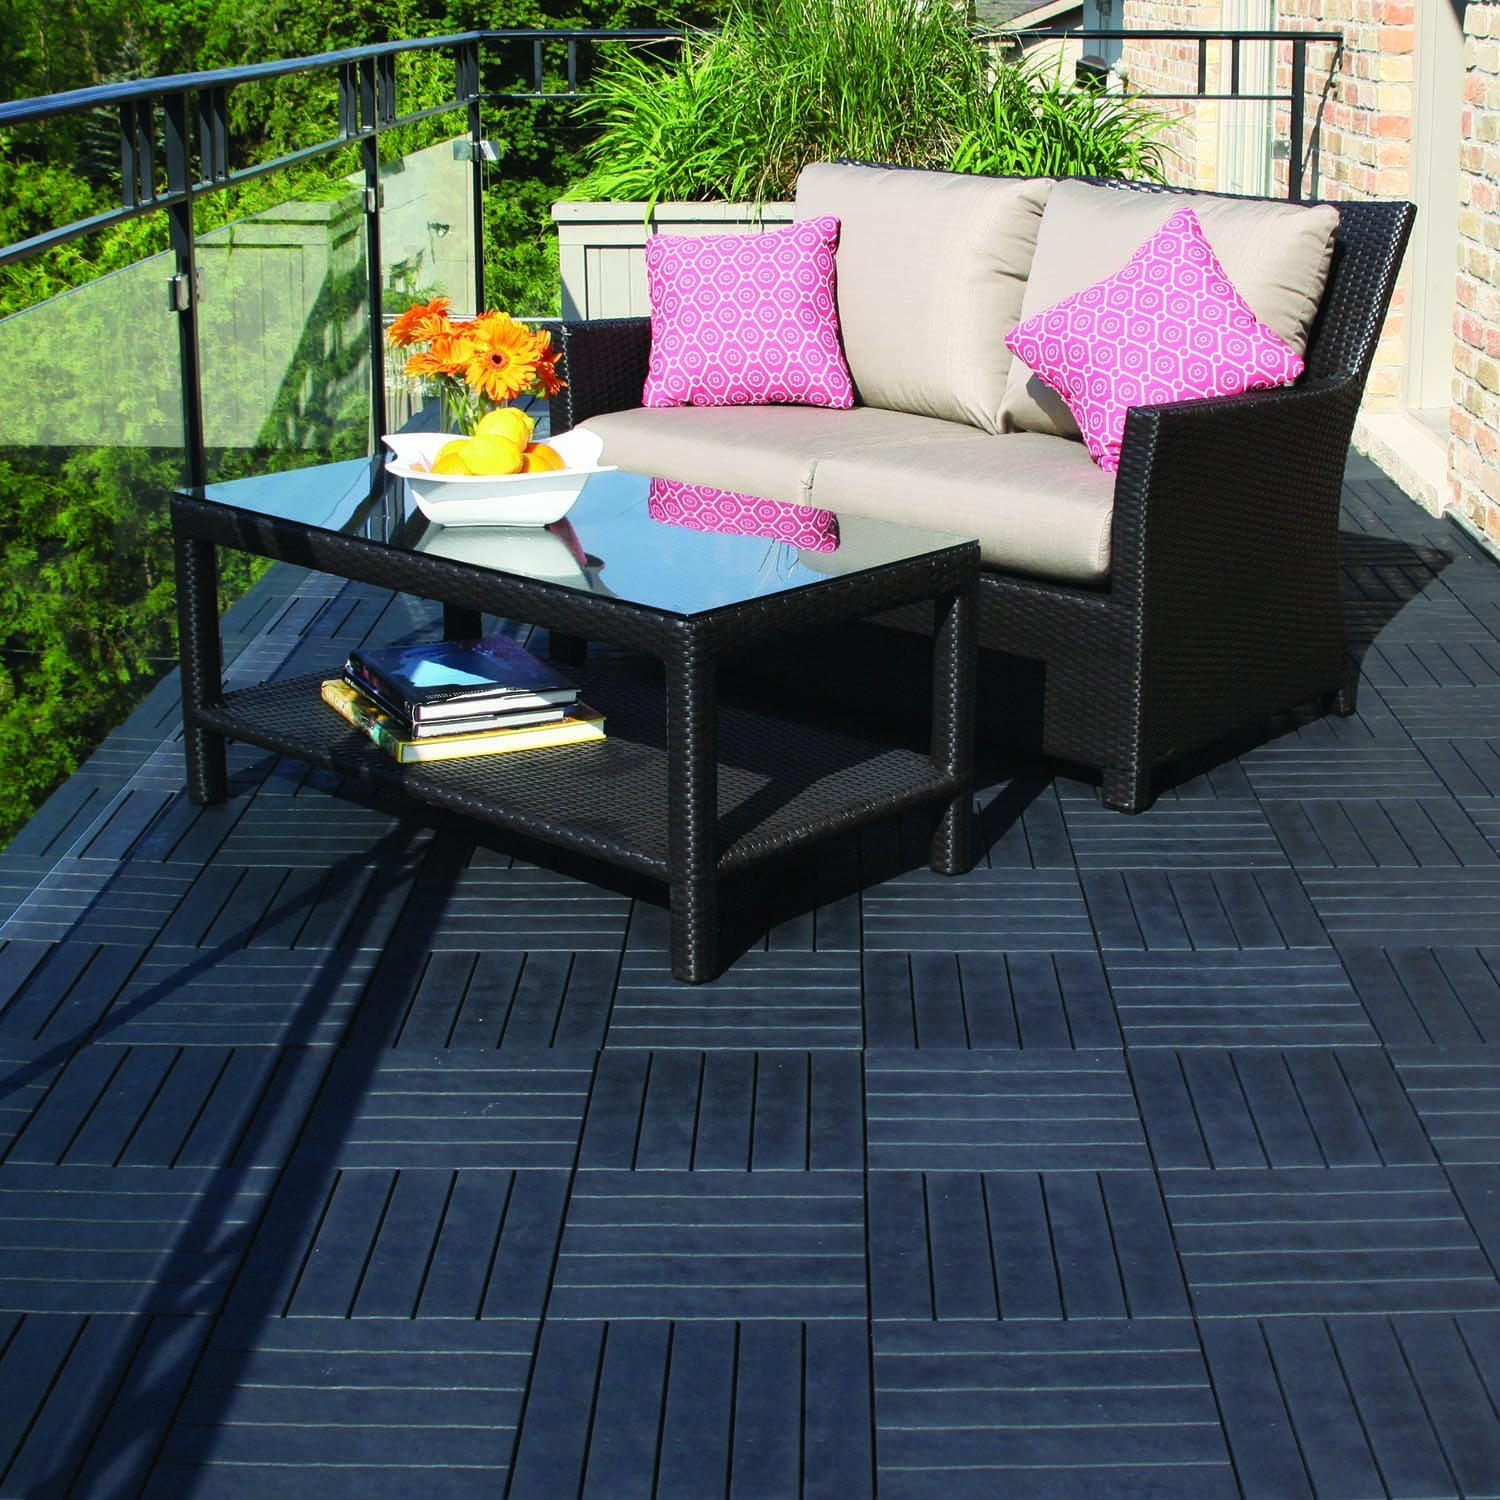 Outdoor Carpet Tiles For Decks Vidalondon